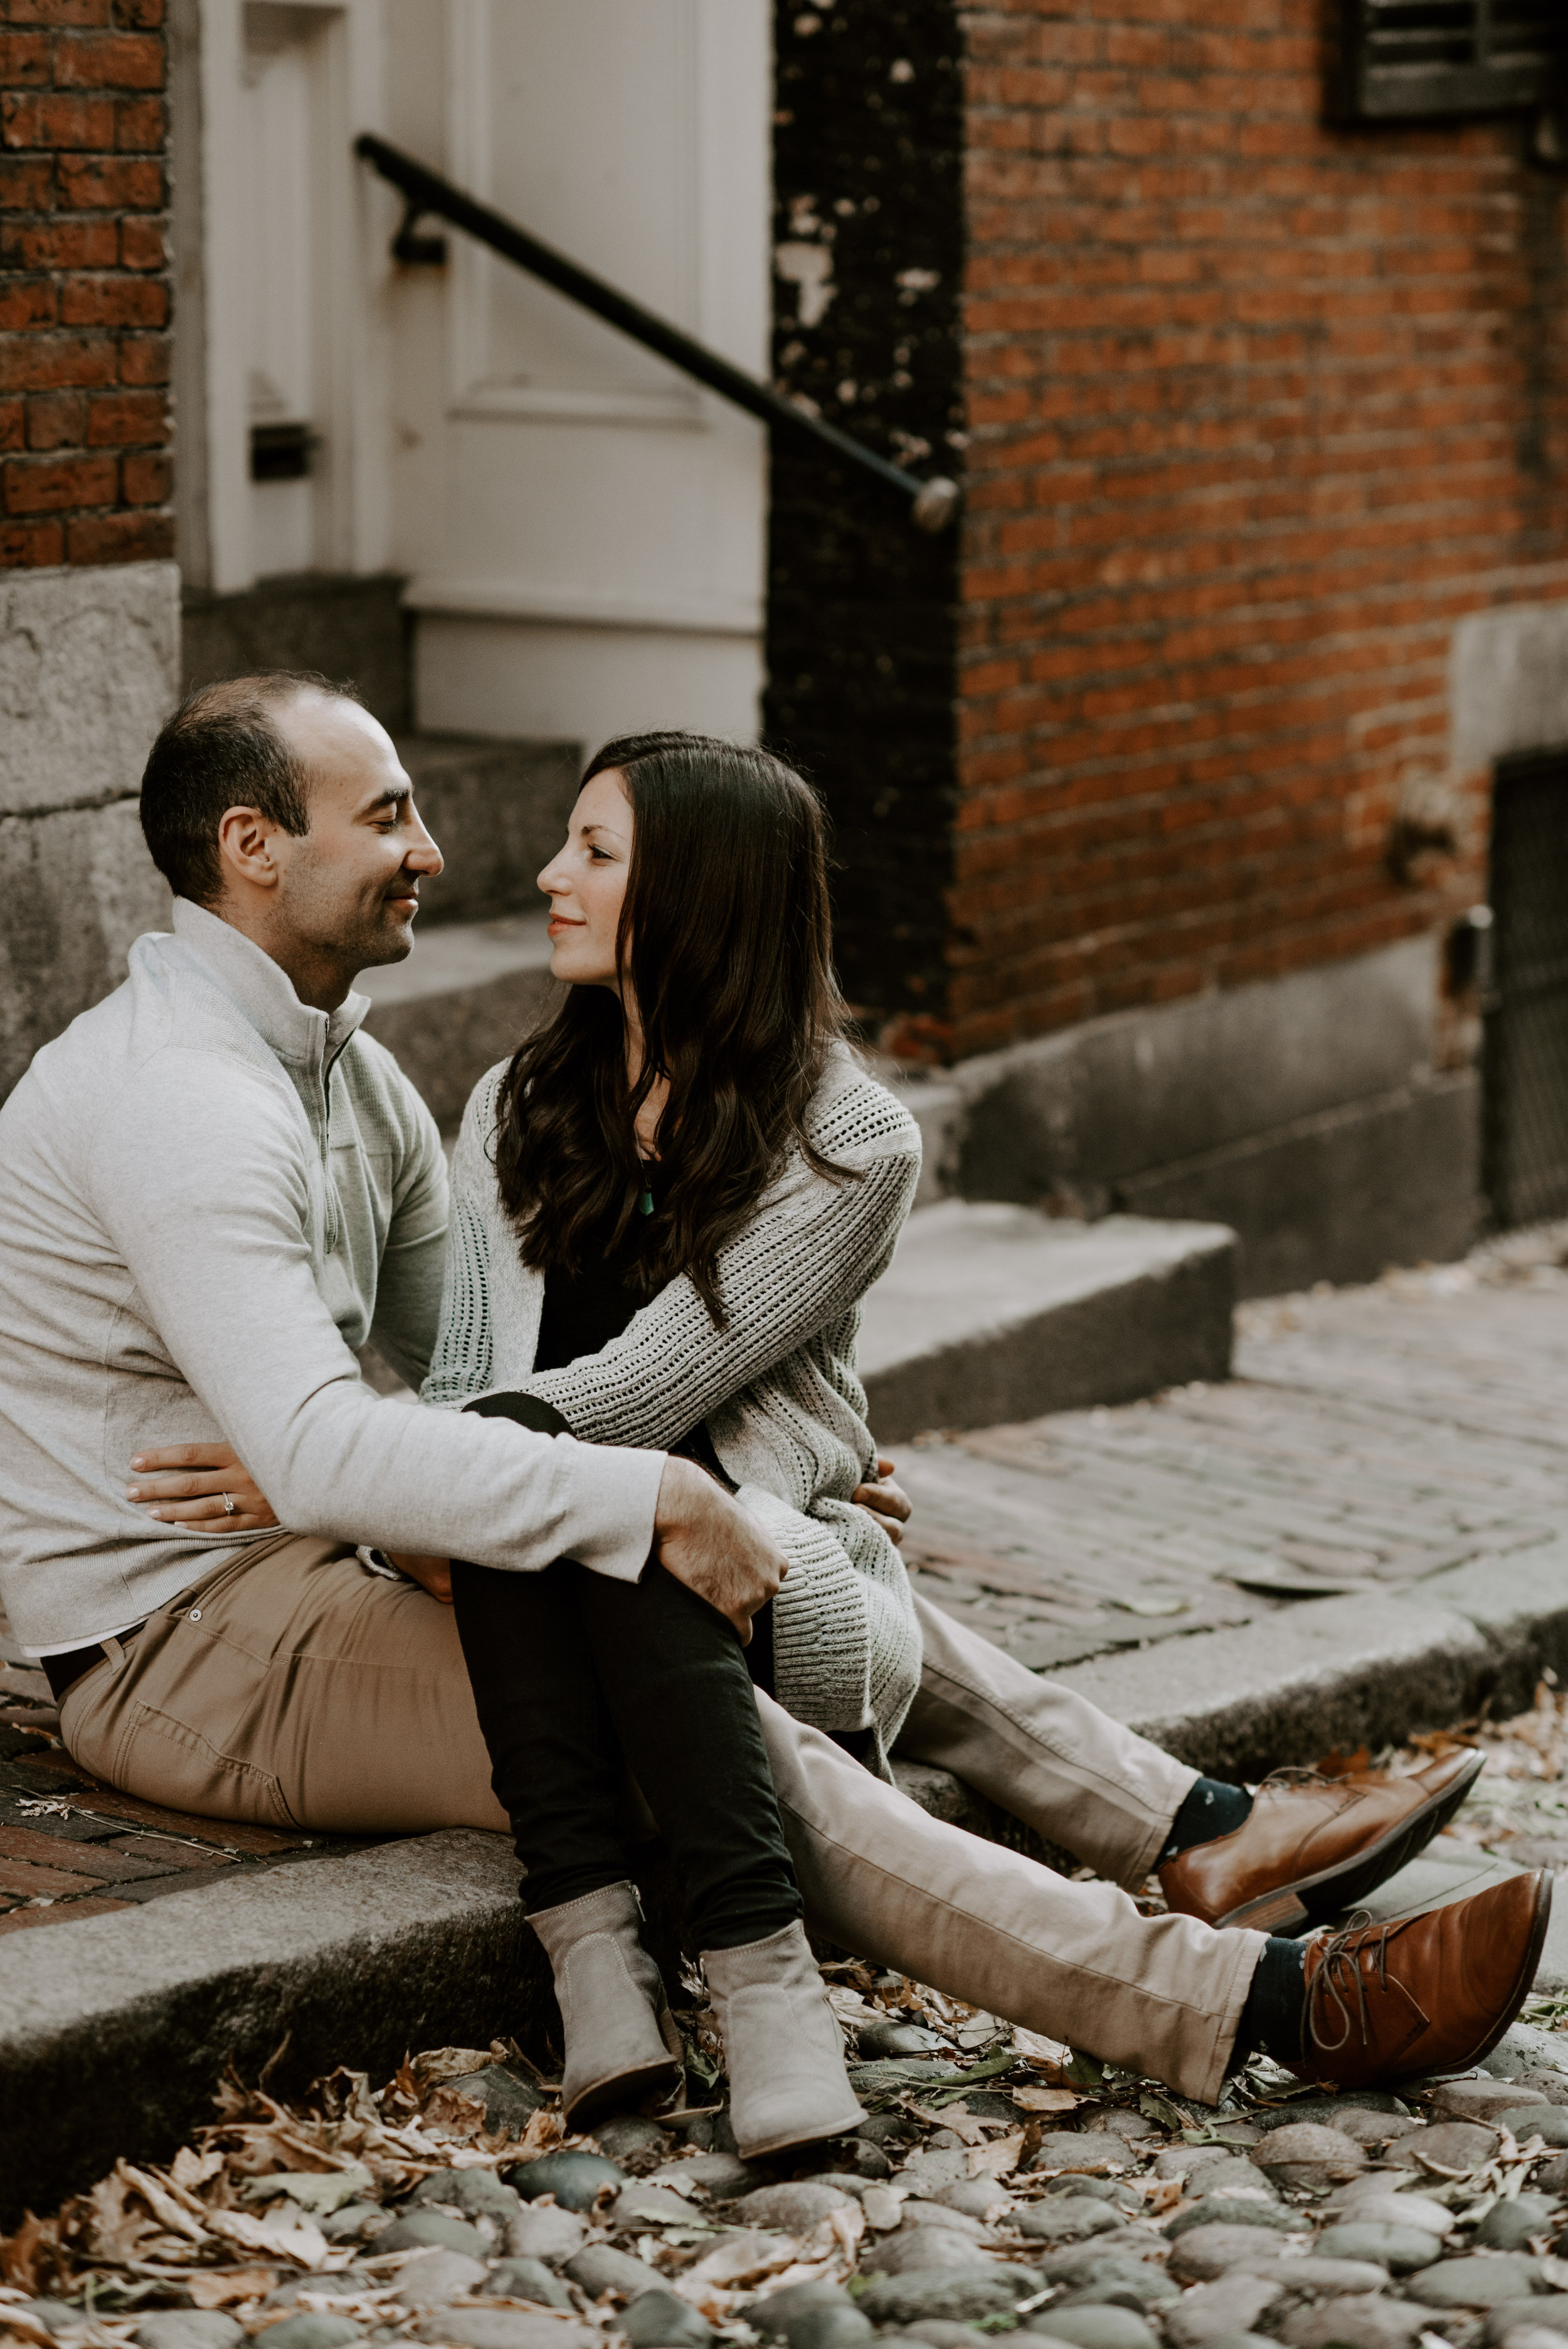 Dramatic and Moody Downtown Boston Engagement Session | Boston Wedding Photographer | Madeline Rose Photography Co.